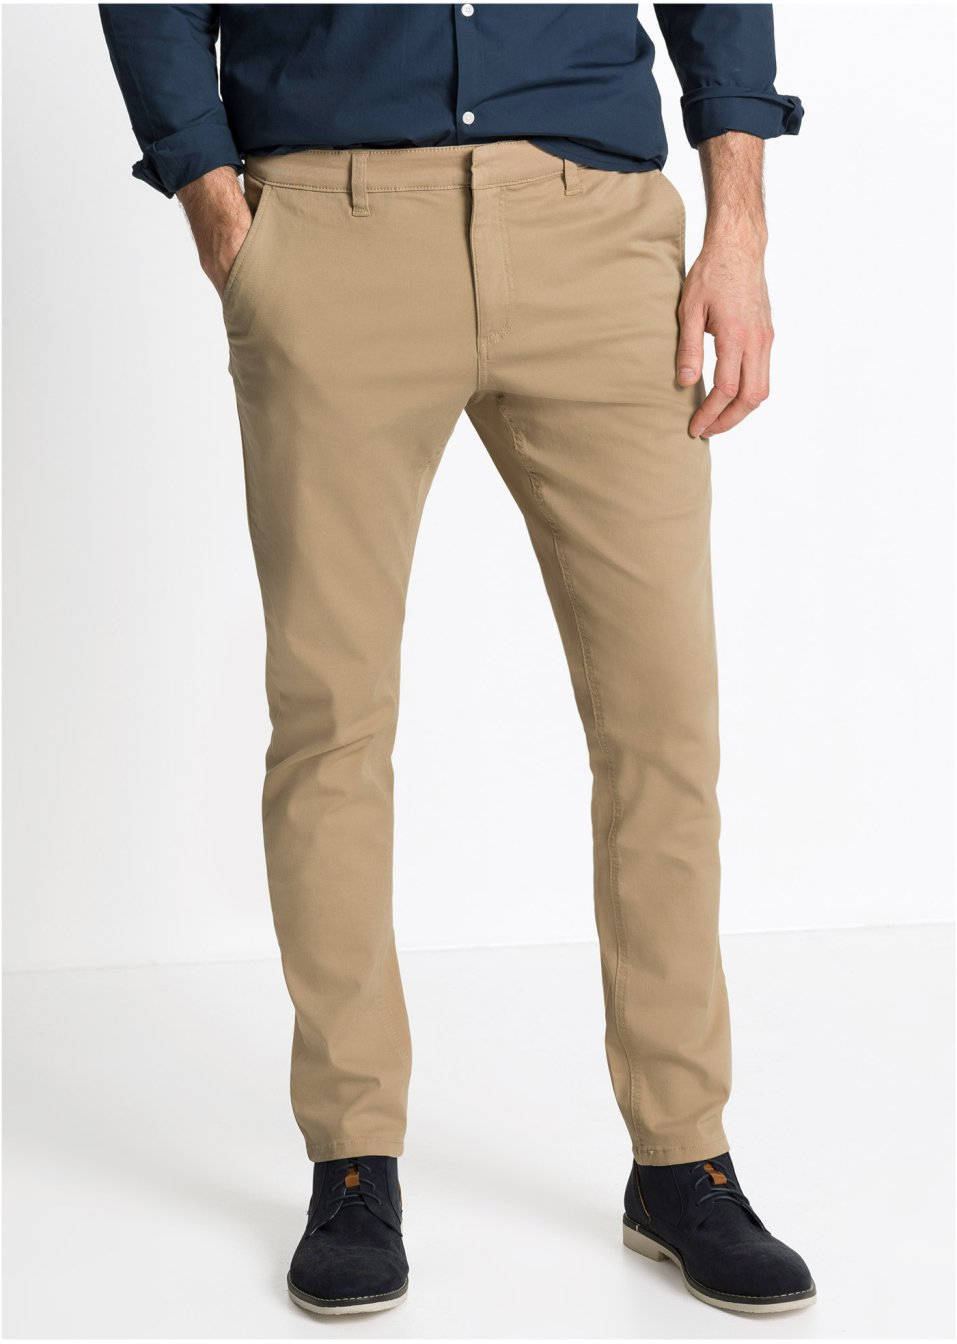 d0dab7fed7de Pantalone chino elasticizzato slim fit tapered Beige - RAINBOW - bonprix.it